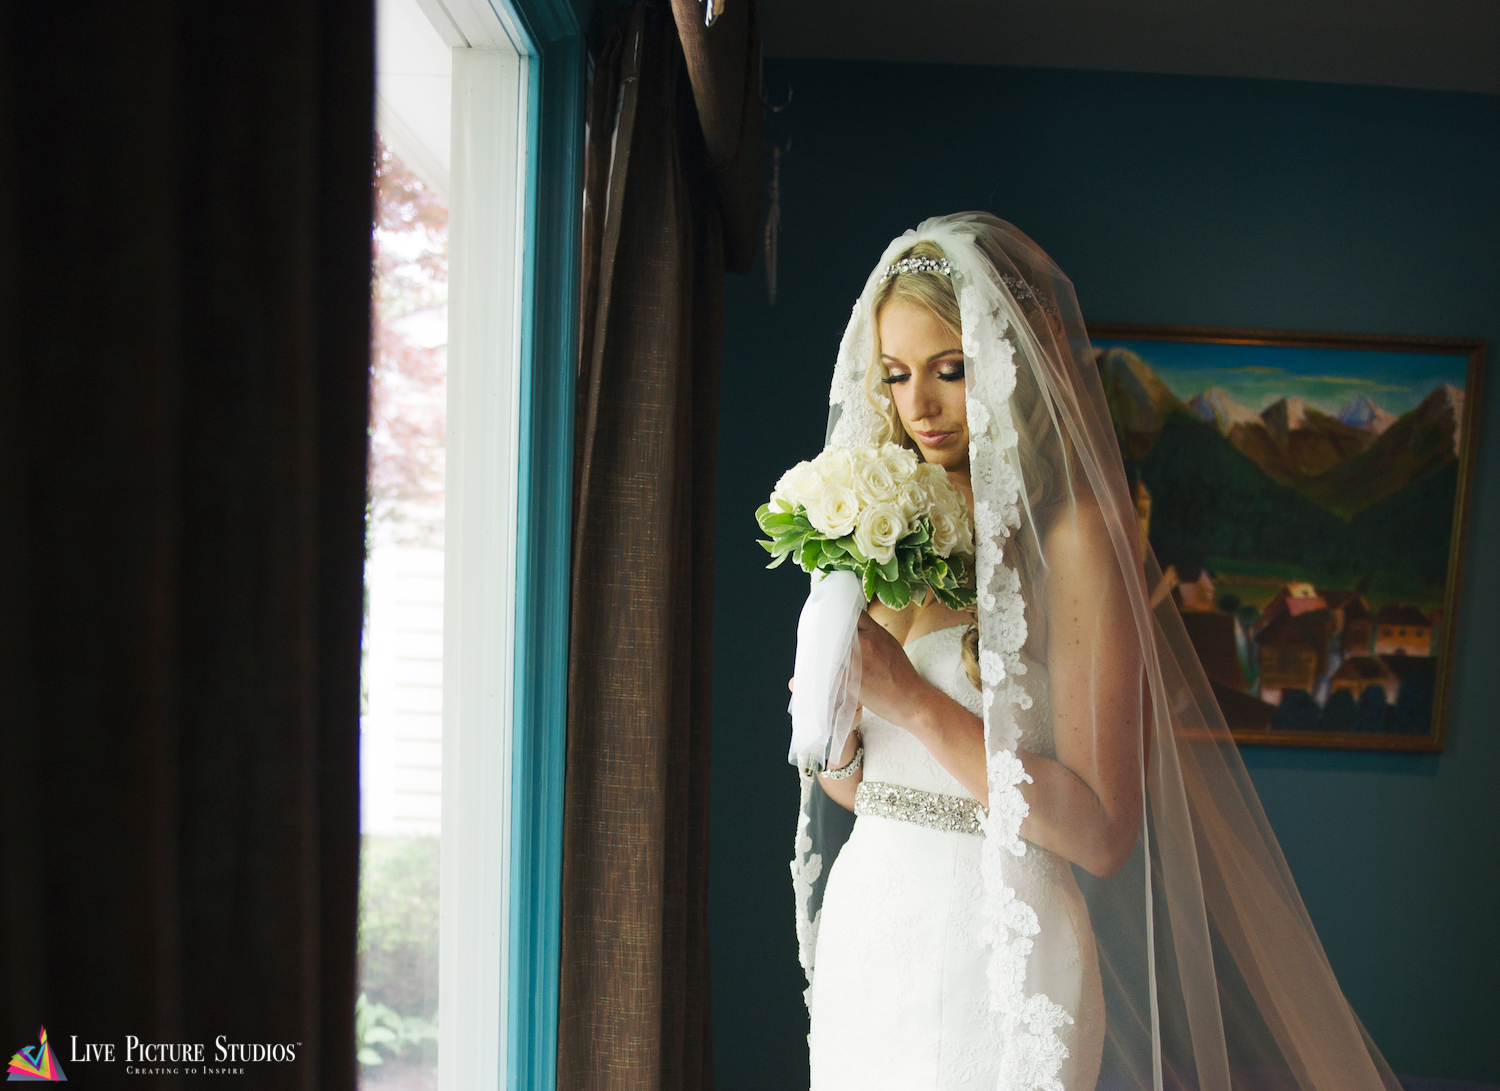 4 Tips for Beautiful Bridal Portraits from Our Vets of Wedding Photography in NJ